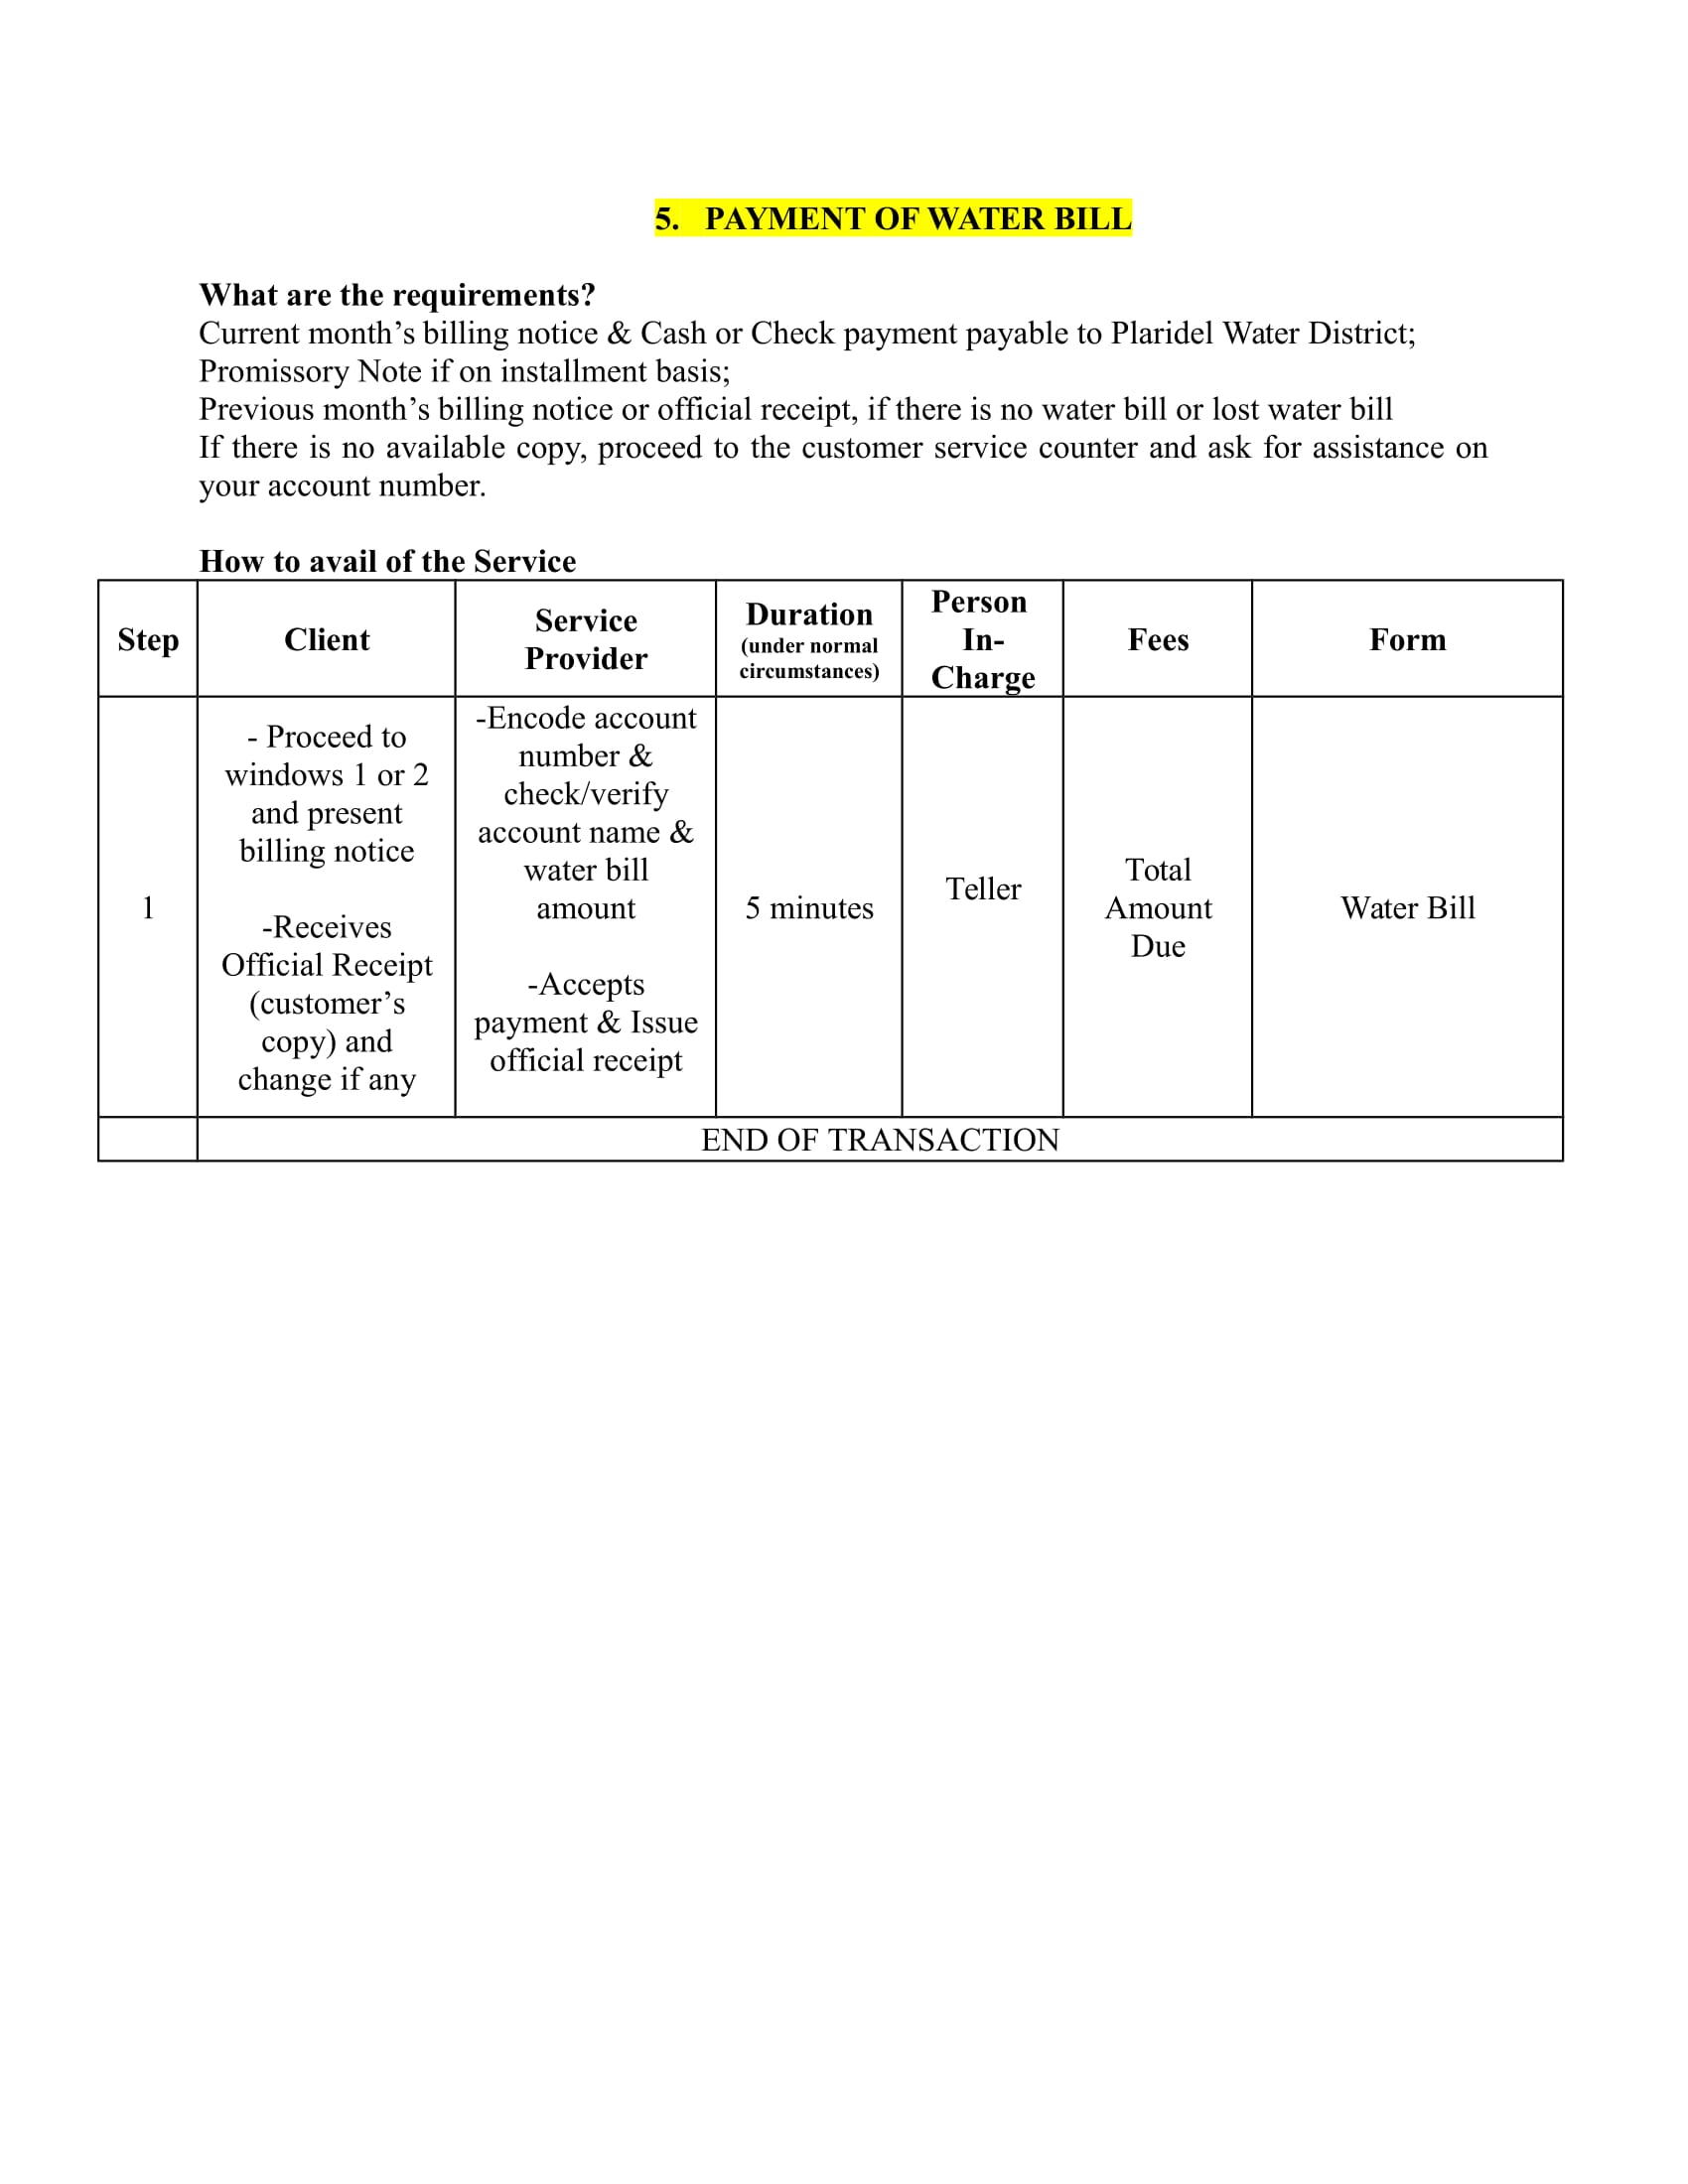 Payment of Water Bill